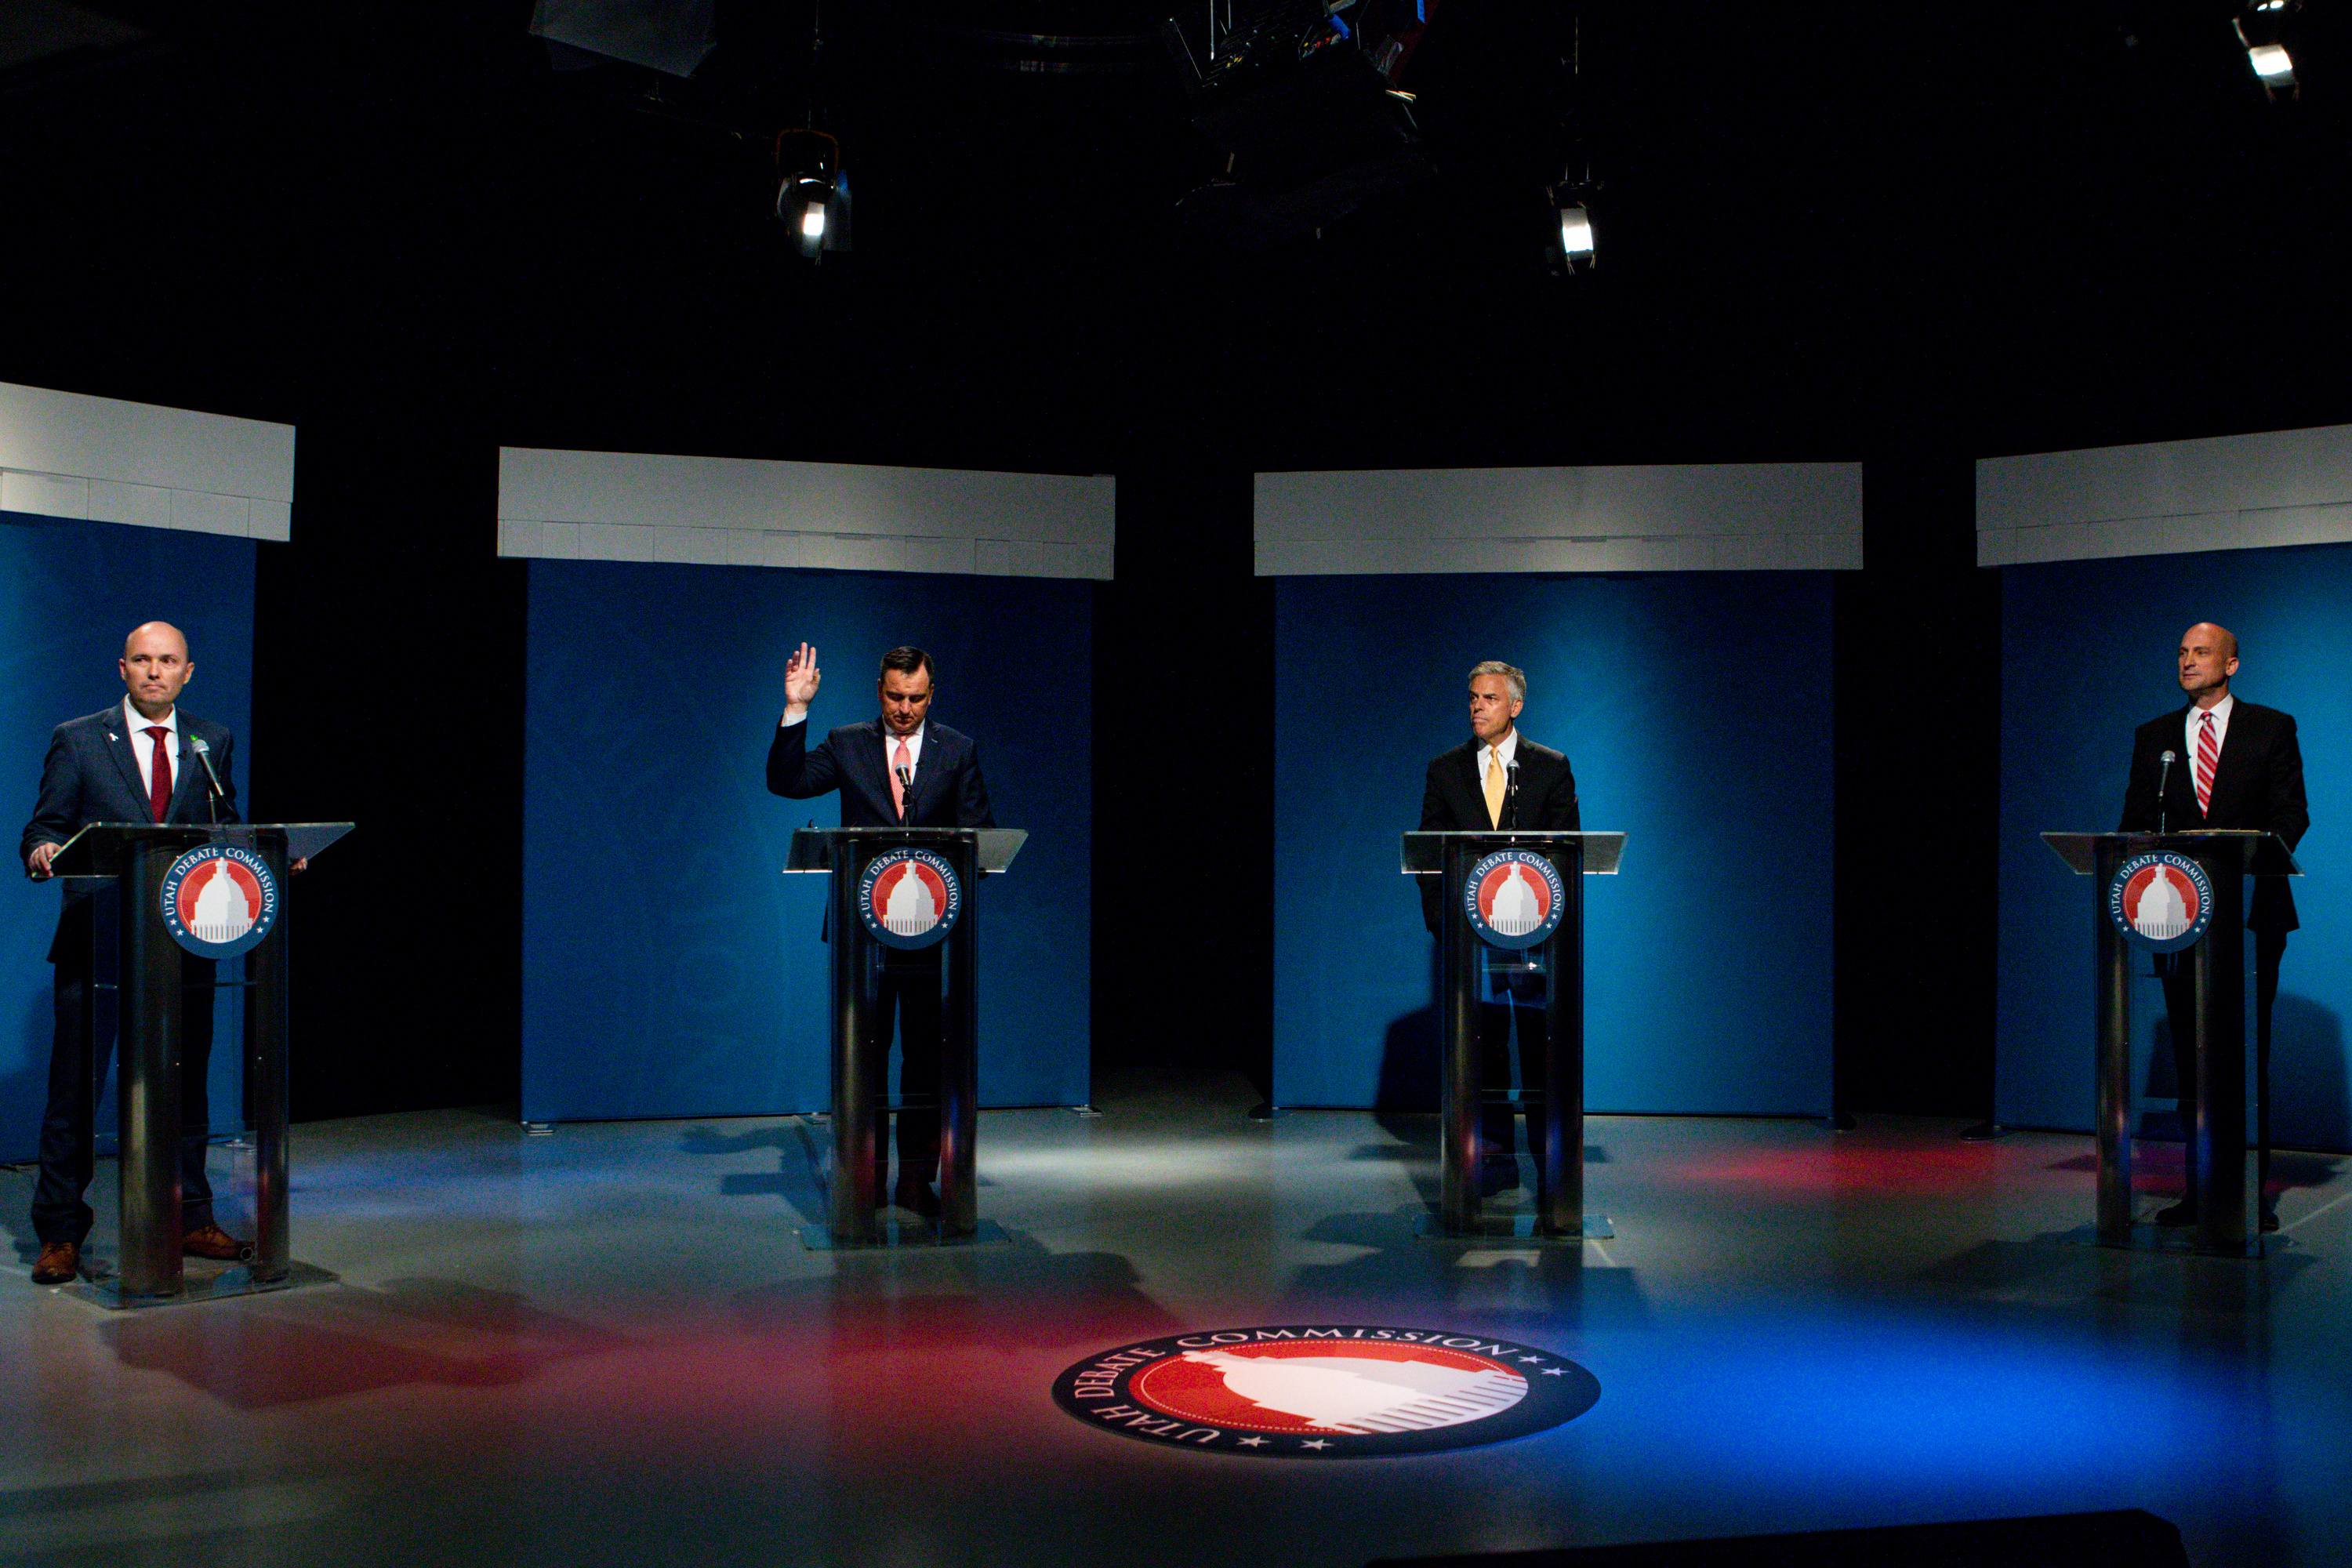 Lt. Gov. Spencer Cox, left, former Utah House Speaker Greg Hughes, former Gov. Jon Huntsman Jr. and former Utah GOP Chairman Thomas Wright participate a Utah gubernatorial Republican primary debate at the PBS Utah studio at the University of Utah in Salt Lake City on Monday, June 1, 2020.